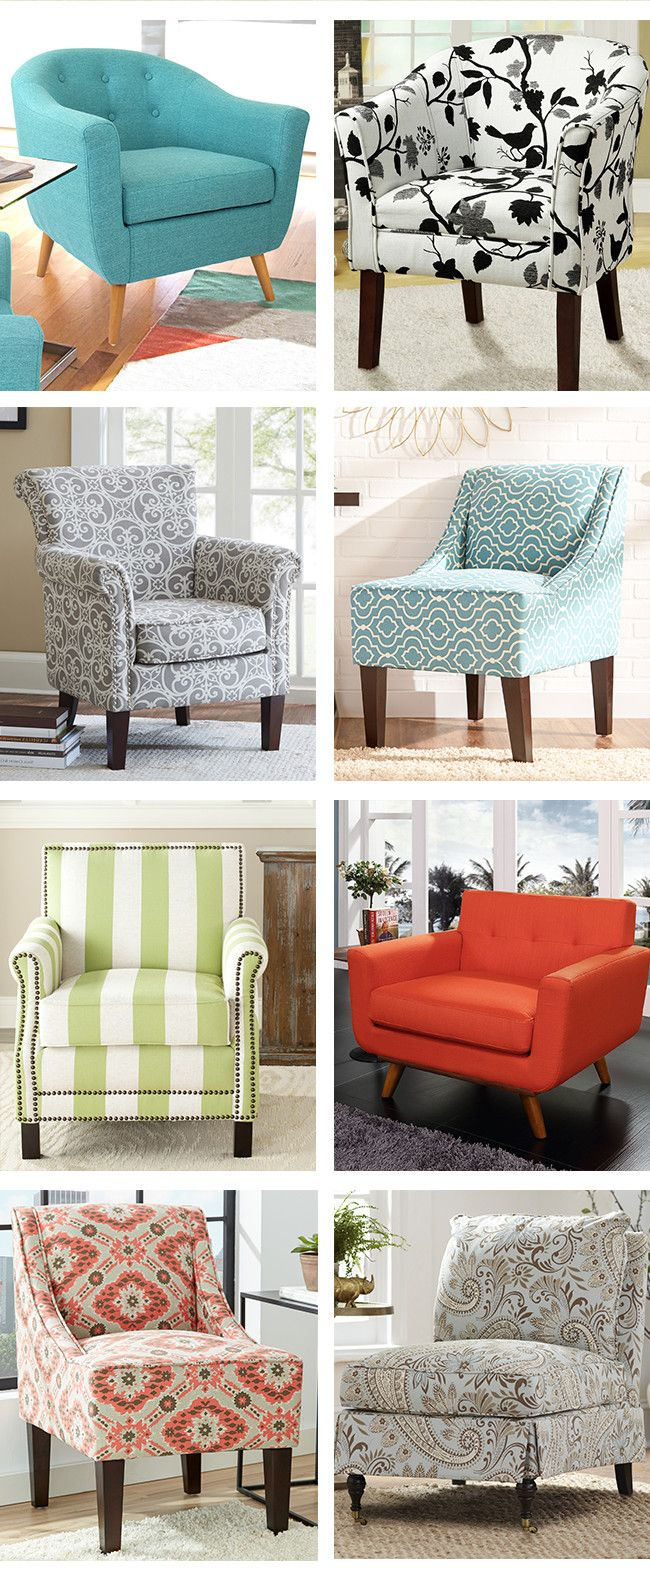 Online Home Store for Furniture, Decor, Outdoors & More | Wayfair